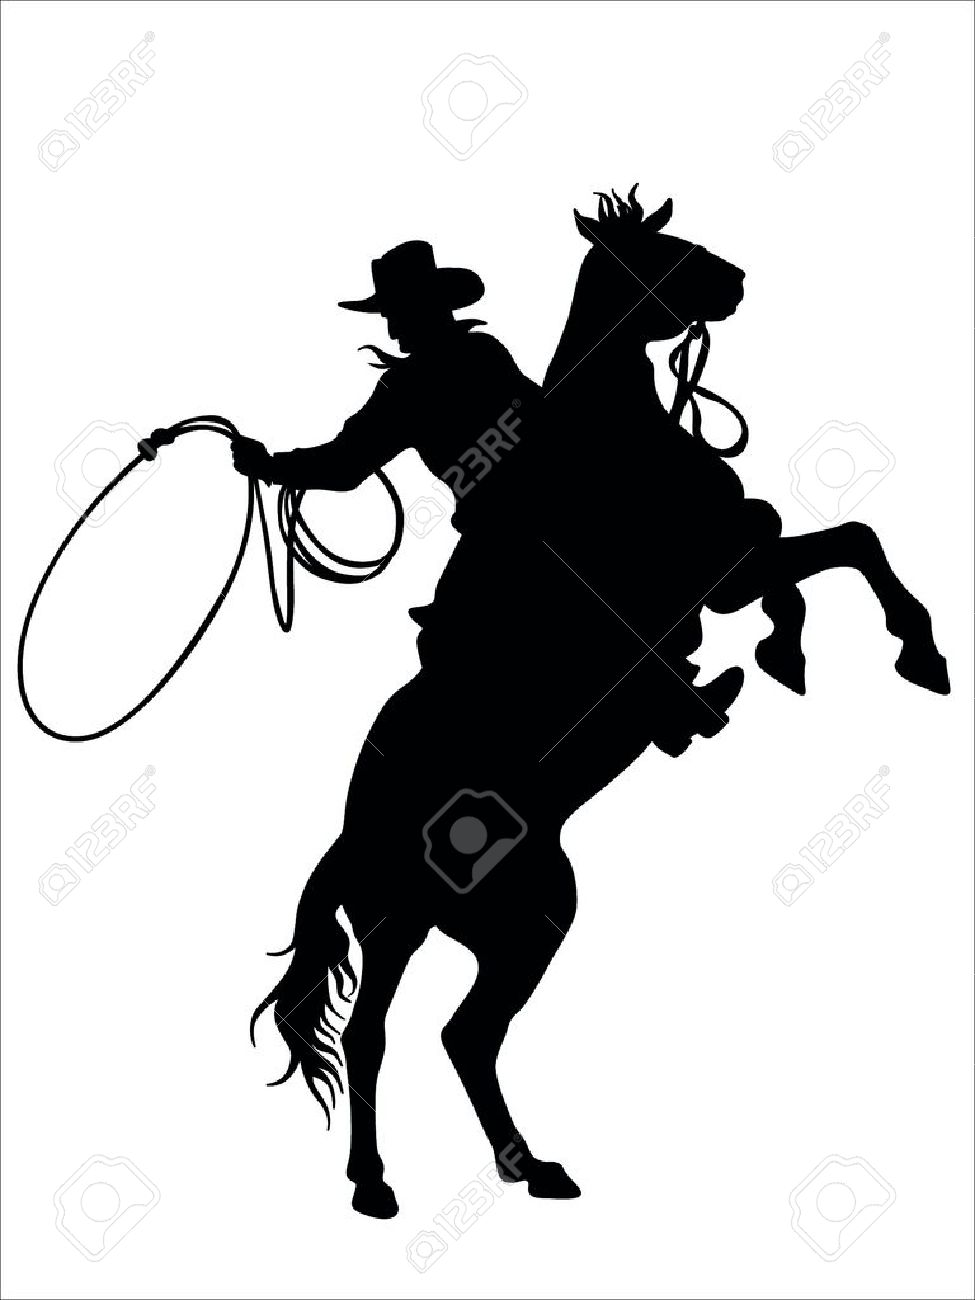 Cowboy Outline With Cowboy Action Outline Clipart : Cowboy Outline.